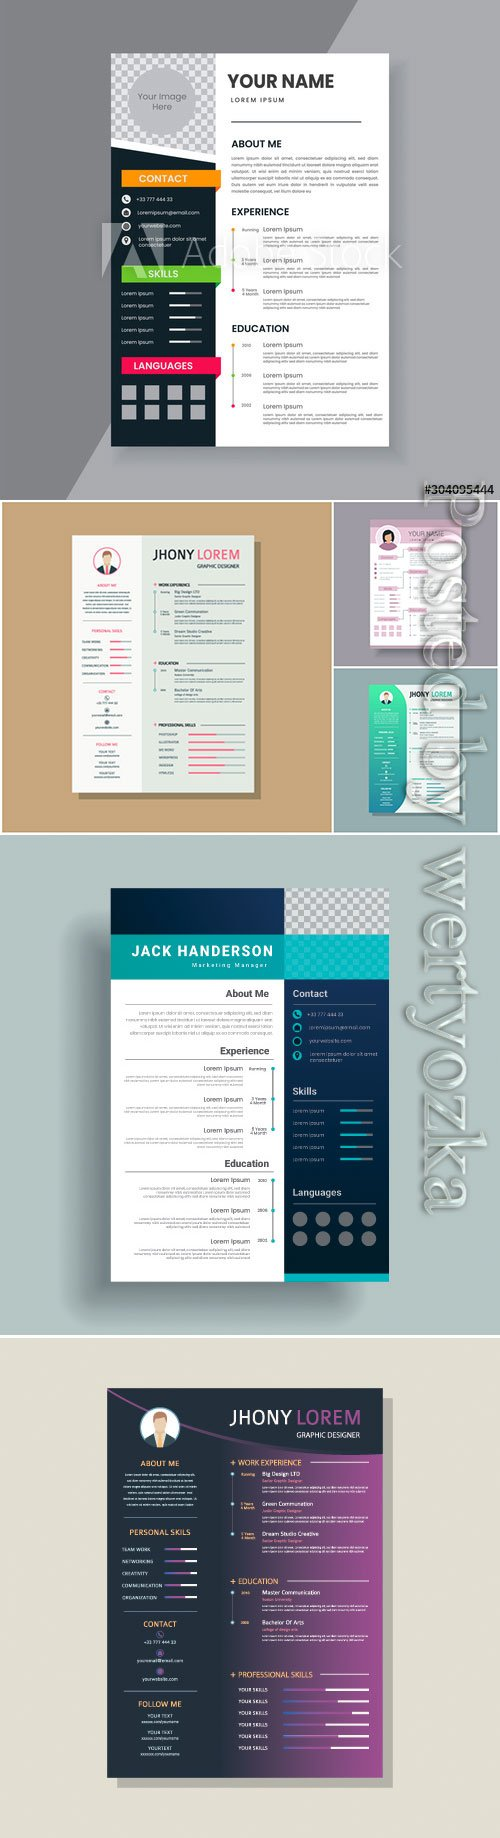 Creative resume and template vector design